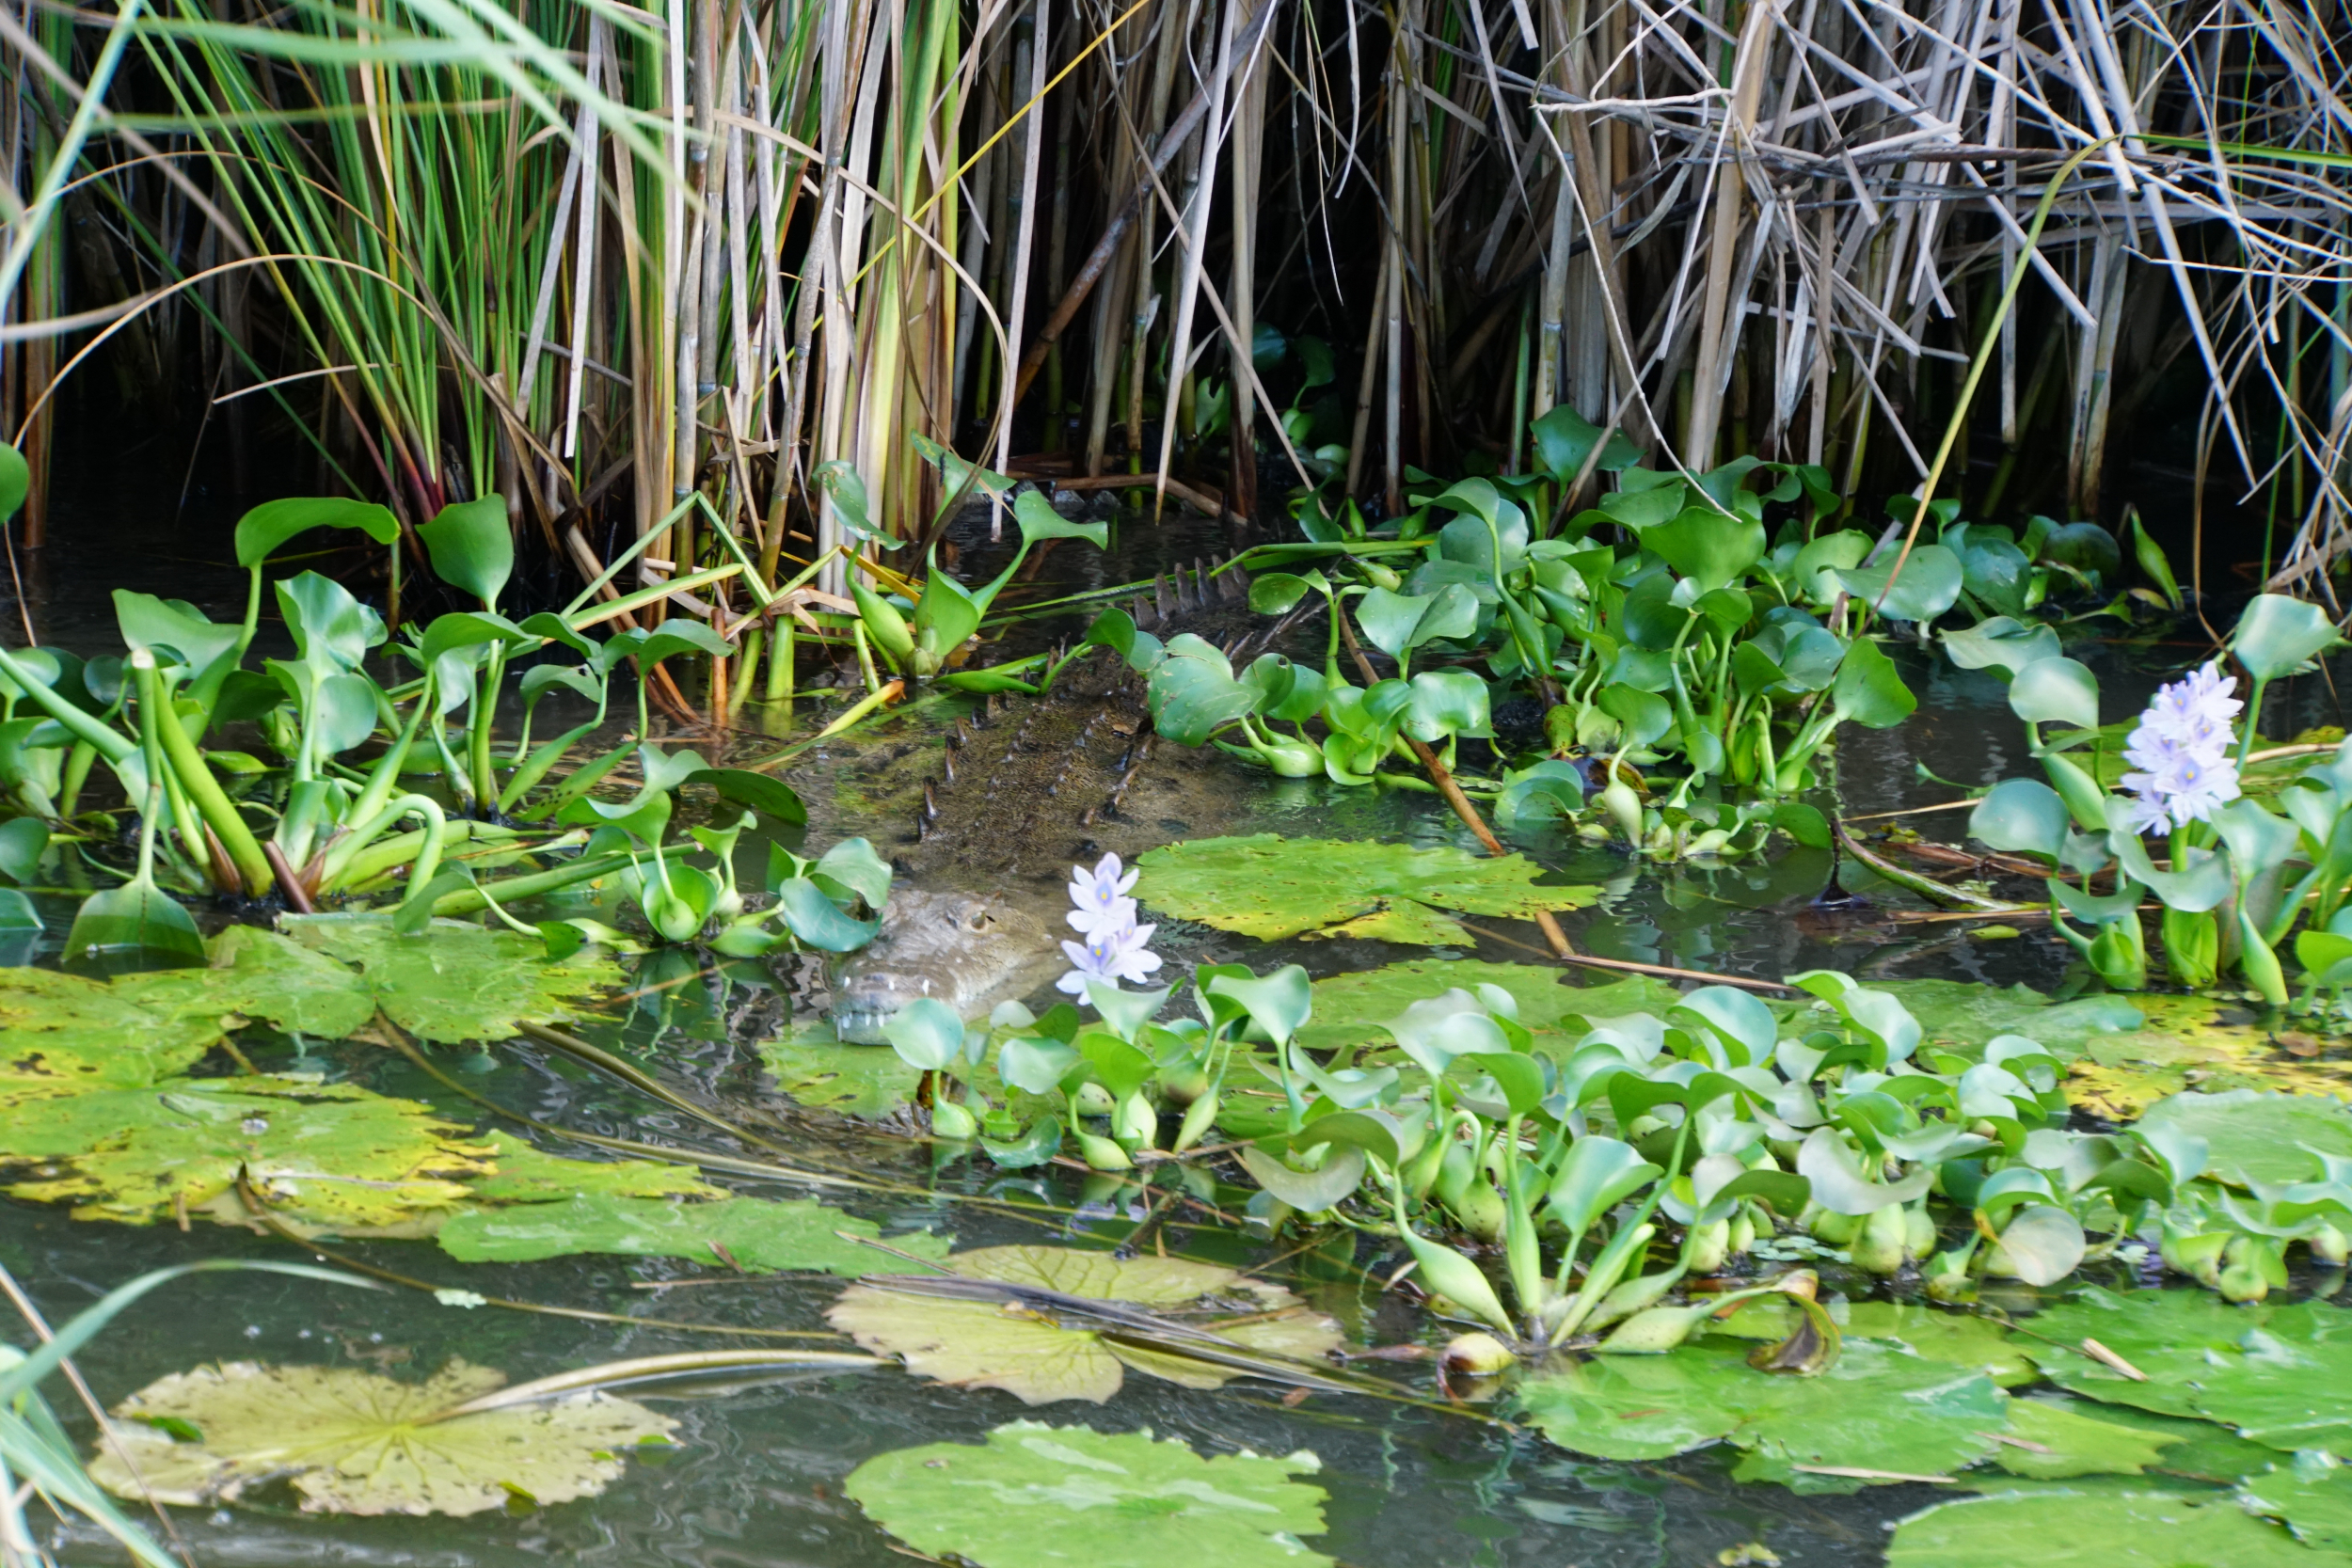 46. Alligator in the lillies